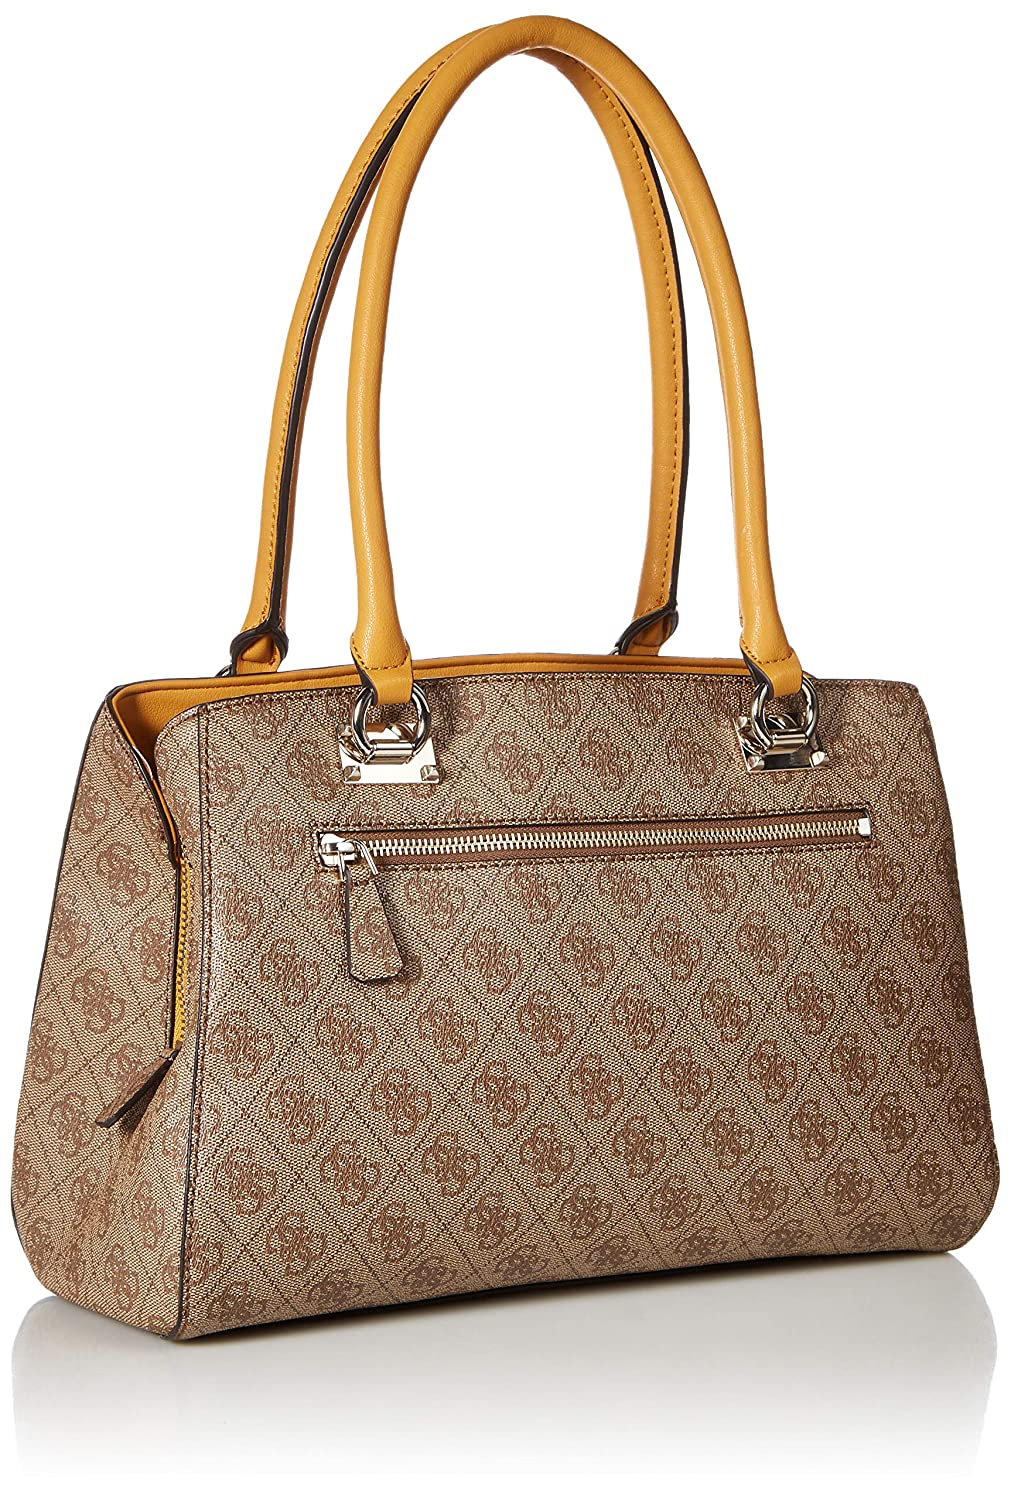 907e26f3c79 Amazon.com: GUESS Kathryn Girlfriend Satchel, Brown/Multi, One Size:  Clothing